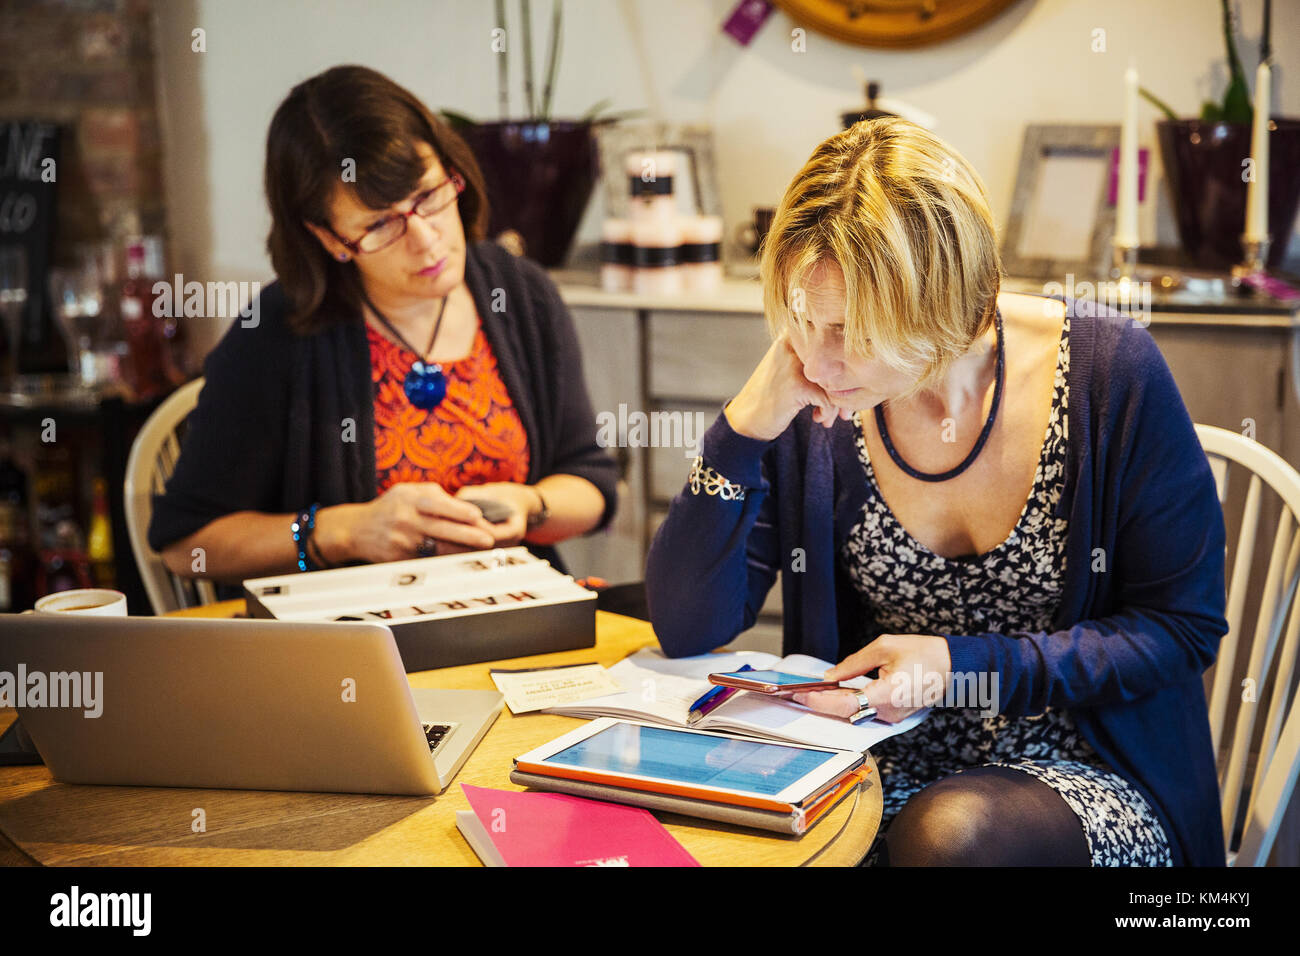 Two women seated at a table, one using a smart phone looking at a laptop screen. - Stock Image